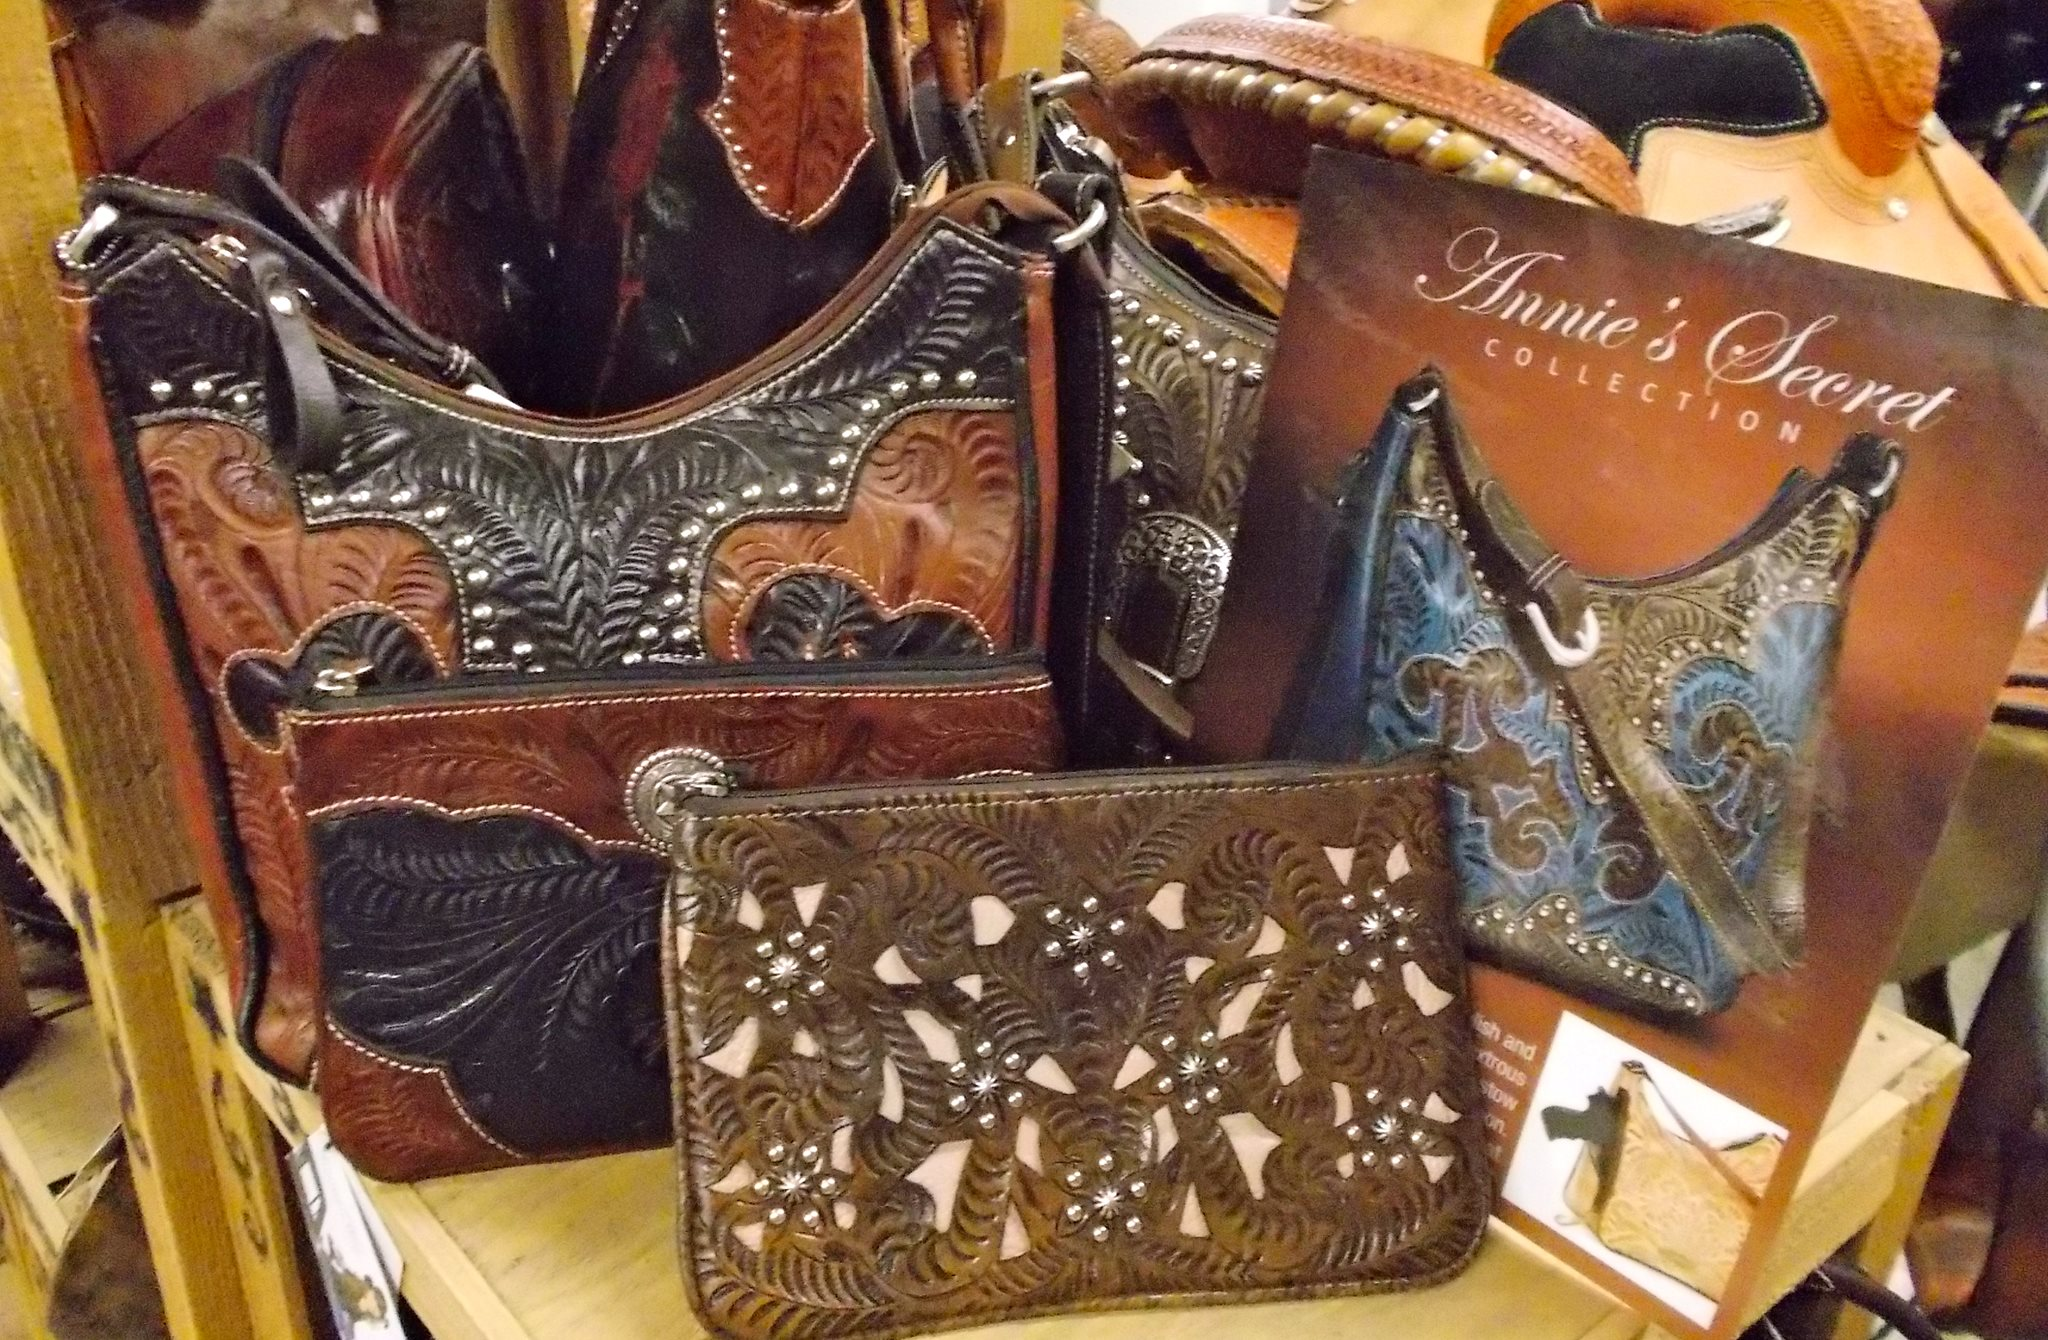 You will also find genuine leather purses and a complete line of men's, women's and kids belts.  Not to mention we have a large selection of home decor items like dishes, mugs, towels and more.